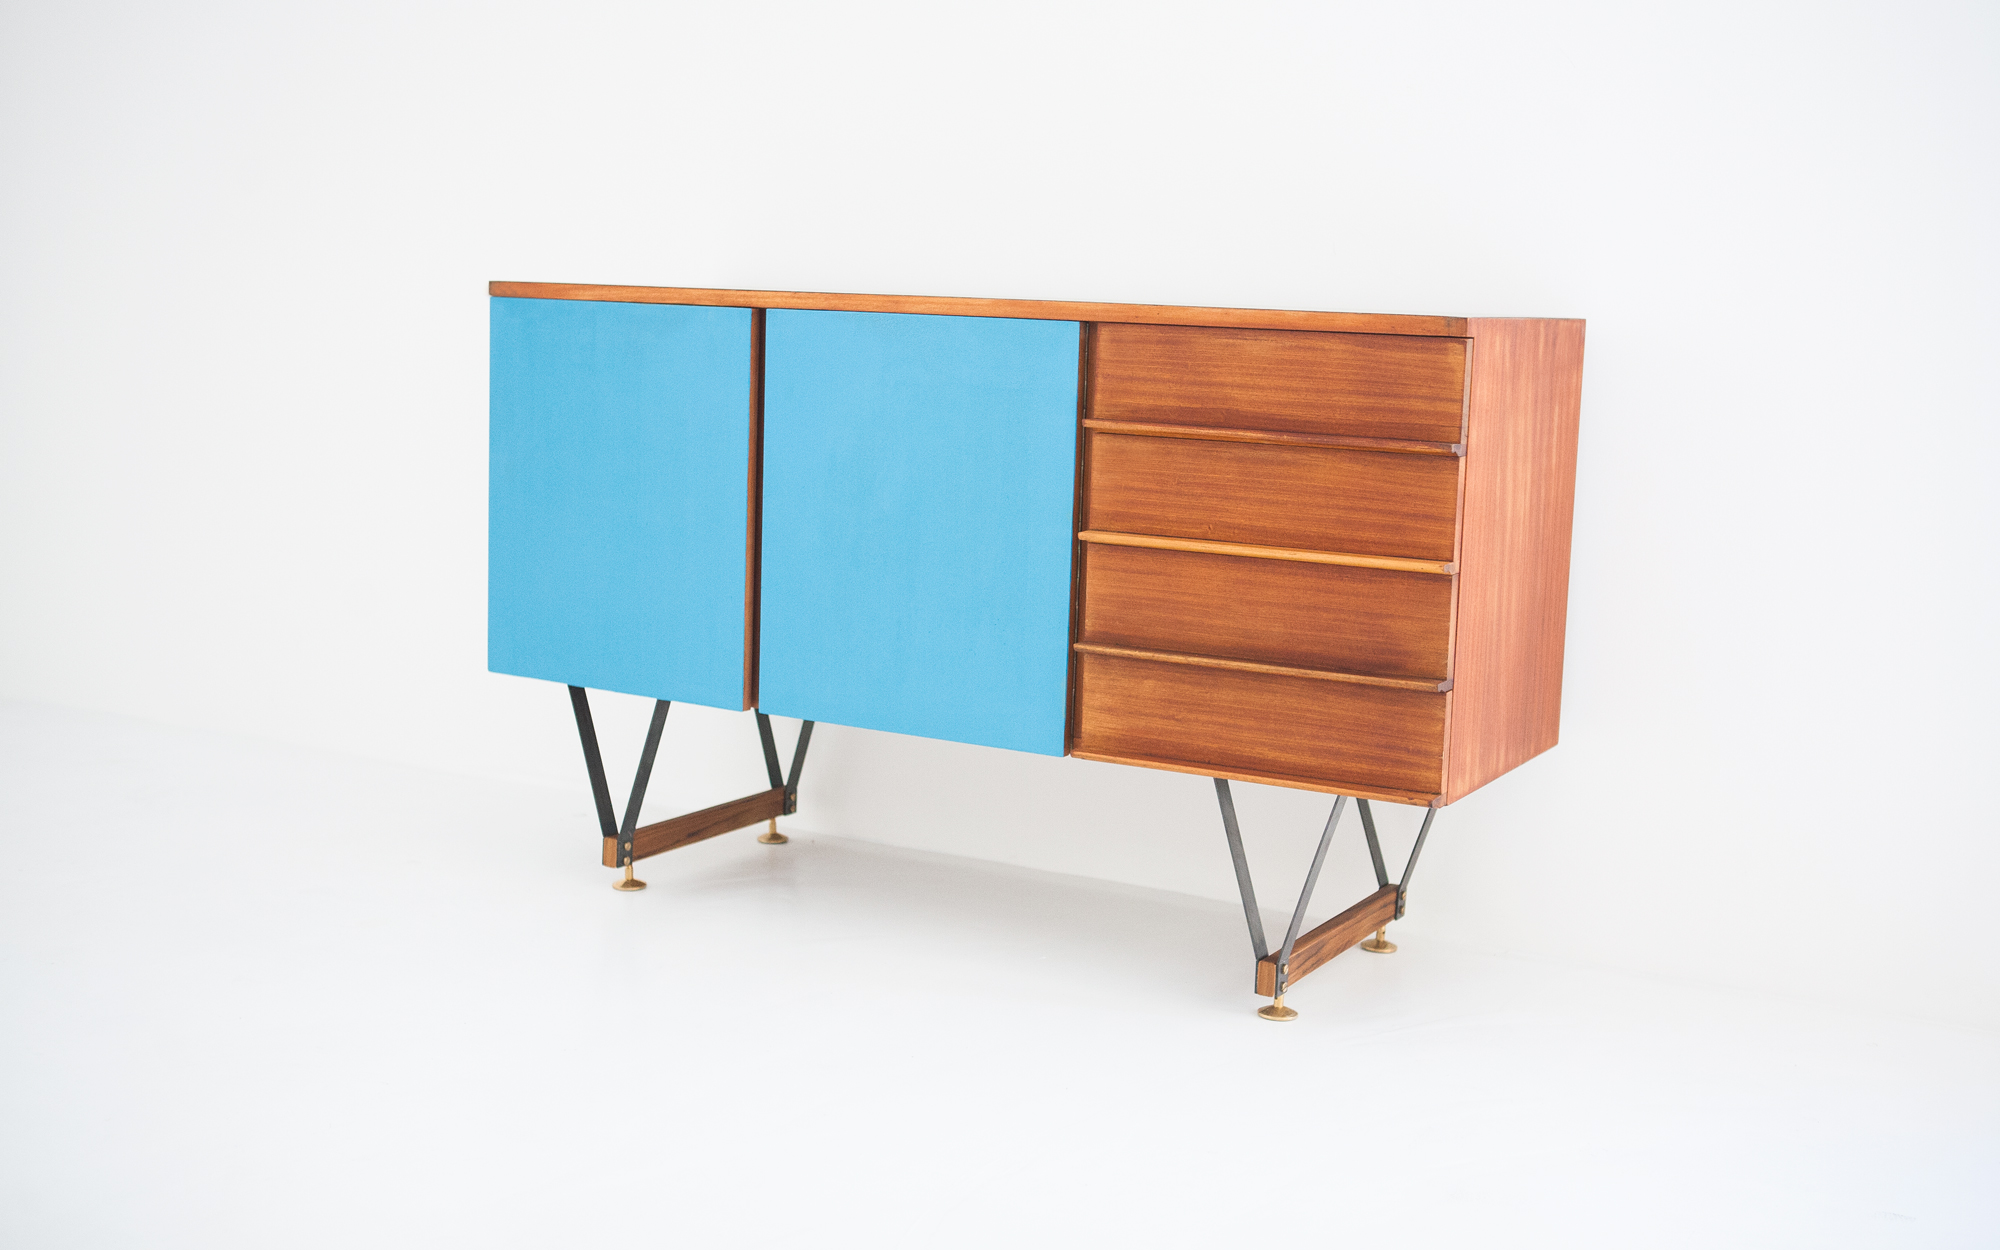 Sideboard 75 4 retro4m for Sideboard 2 m lang